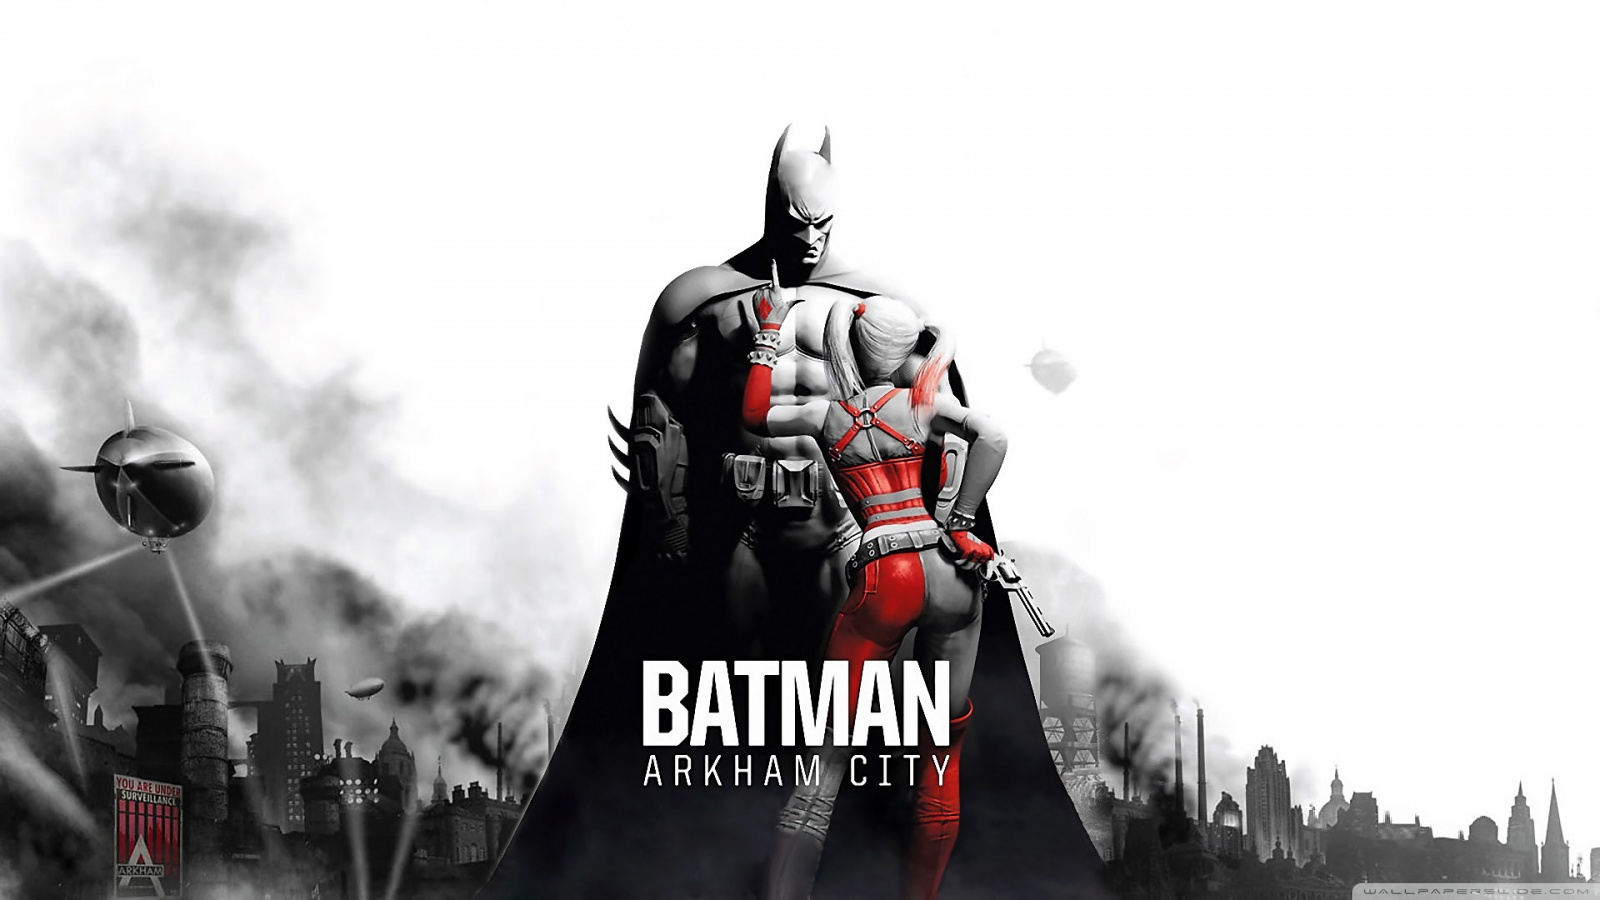 ps3 dvd controls with Batman Arkham City Full Hd 1080p on Saitek Cyborg PS1000 2 In 1 Dual Analog Gaming Pad For PC And PS3 42297 likewise Vizio Remote Control Vr2 0980 0305 3000 also Need For Speed World Free Download moreover C2t5cmltIGltcGVyaWFsIHN5bWJvbA moreover E5 AE A2 E6 88 B7.